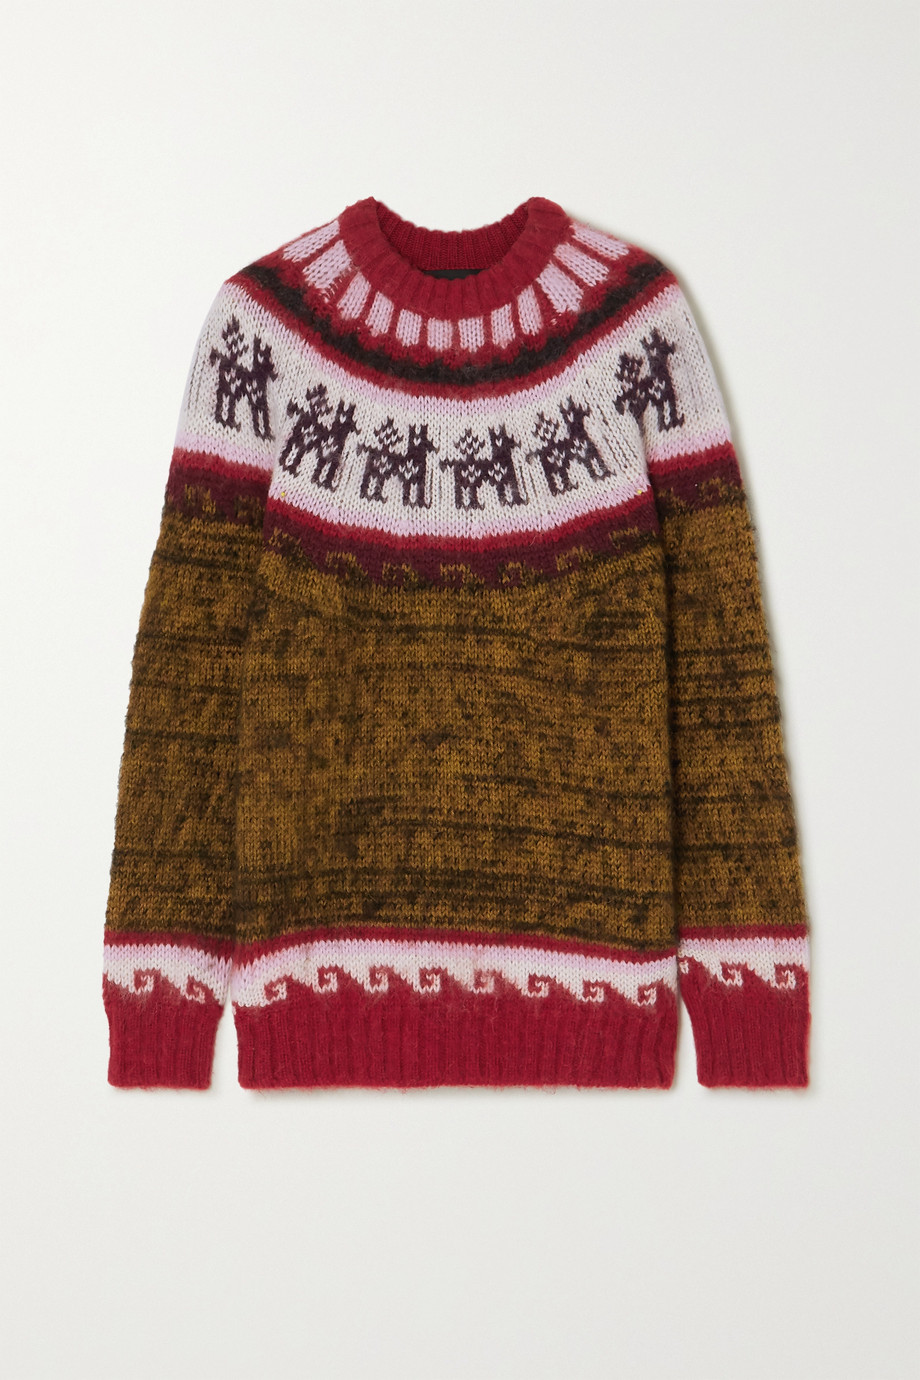 Miu Miu Oversized Fair Isle alpaca-blend sweater